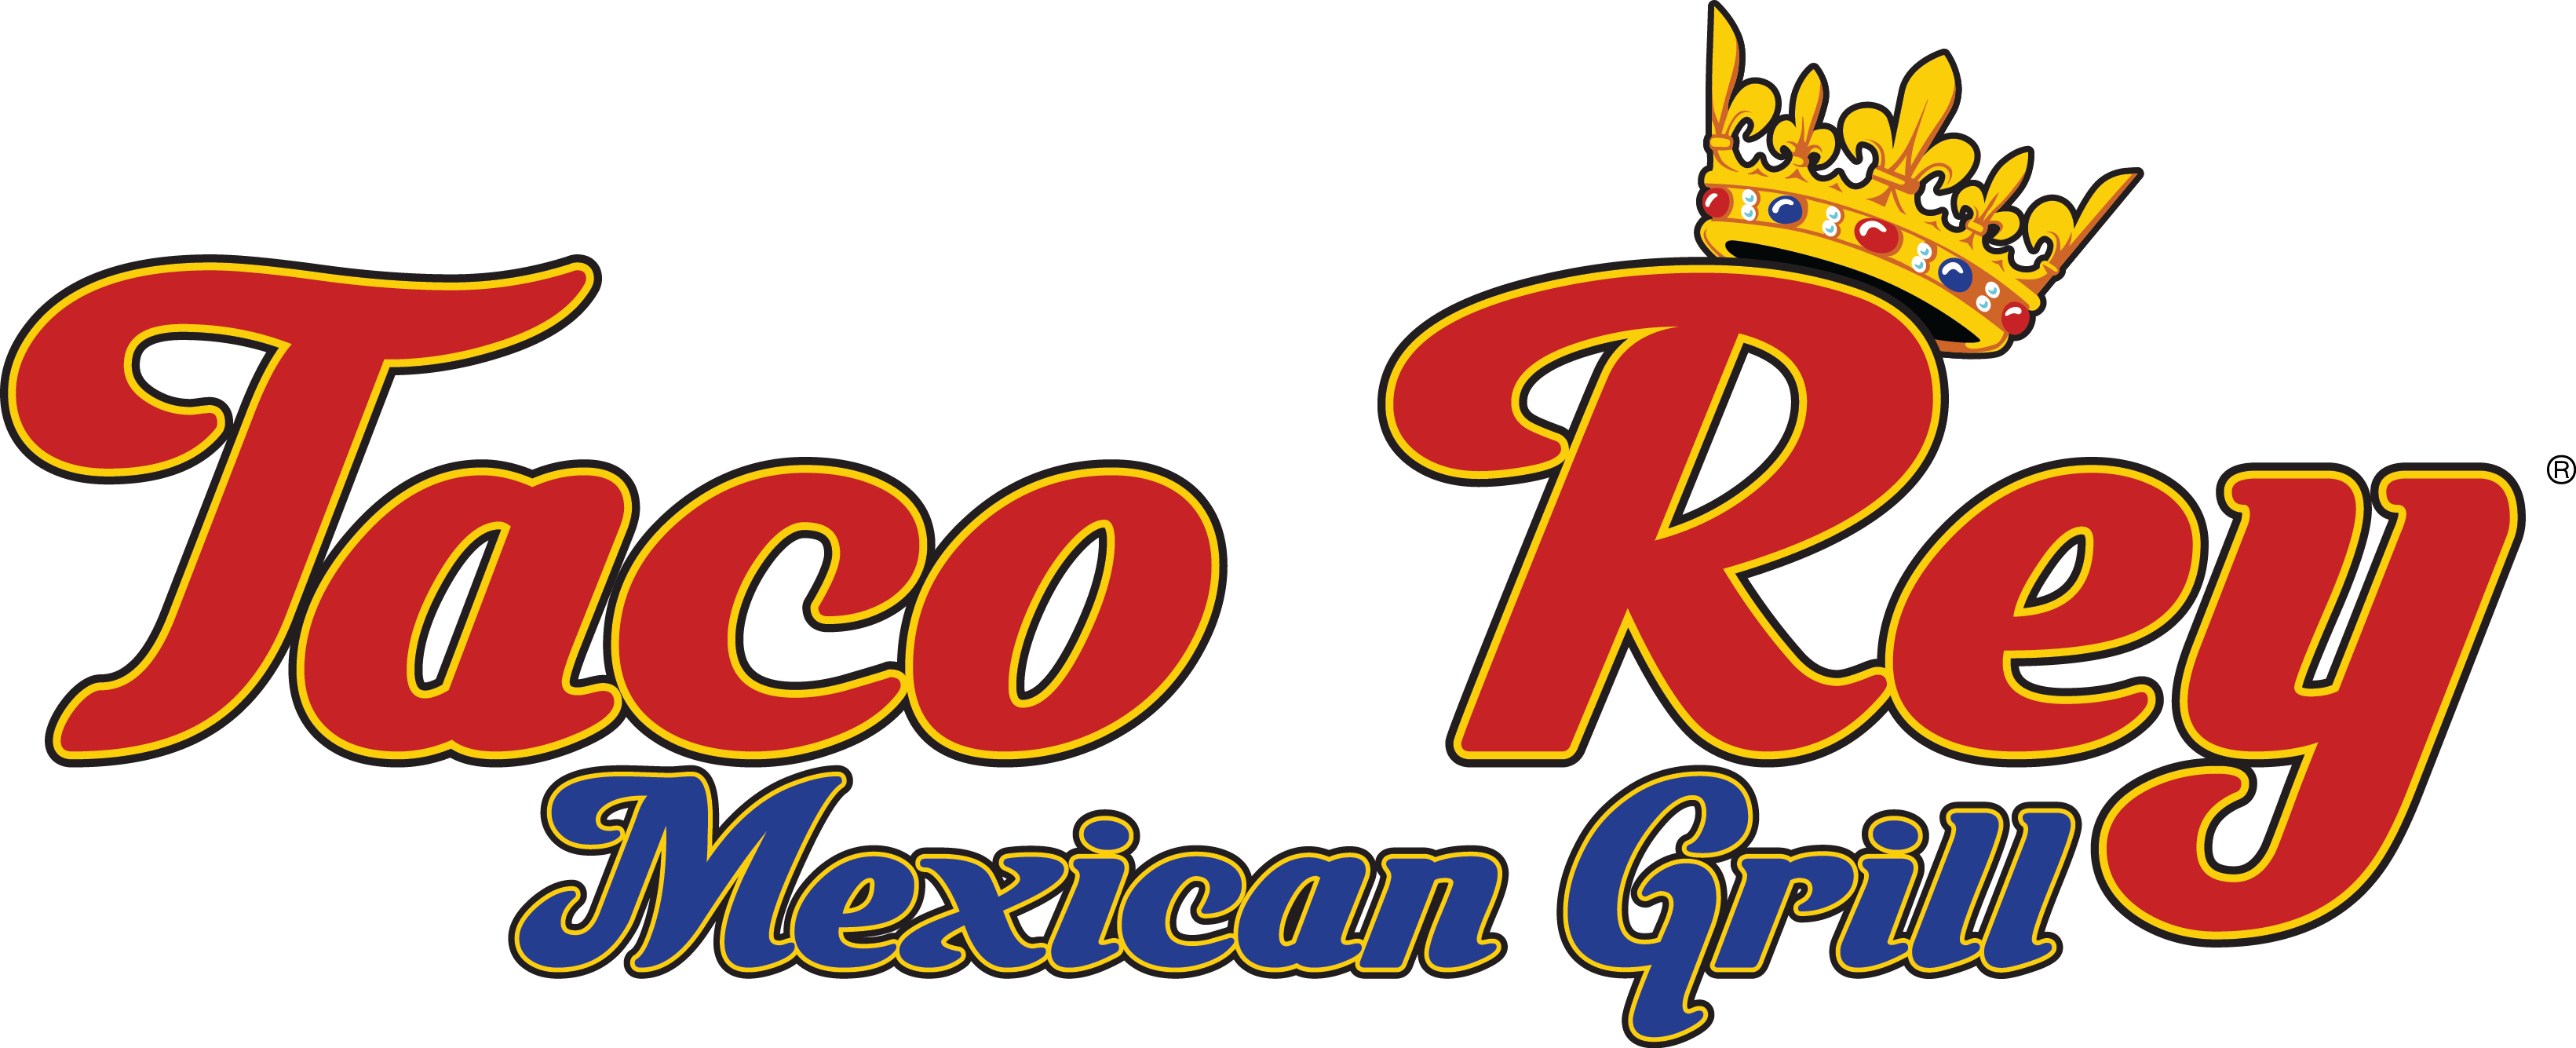 3282x1335 Taco Rey Mexican Grill Authentic Mexican Food In Florida!